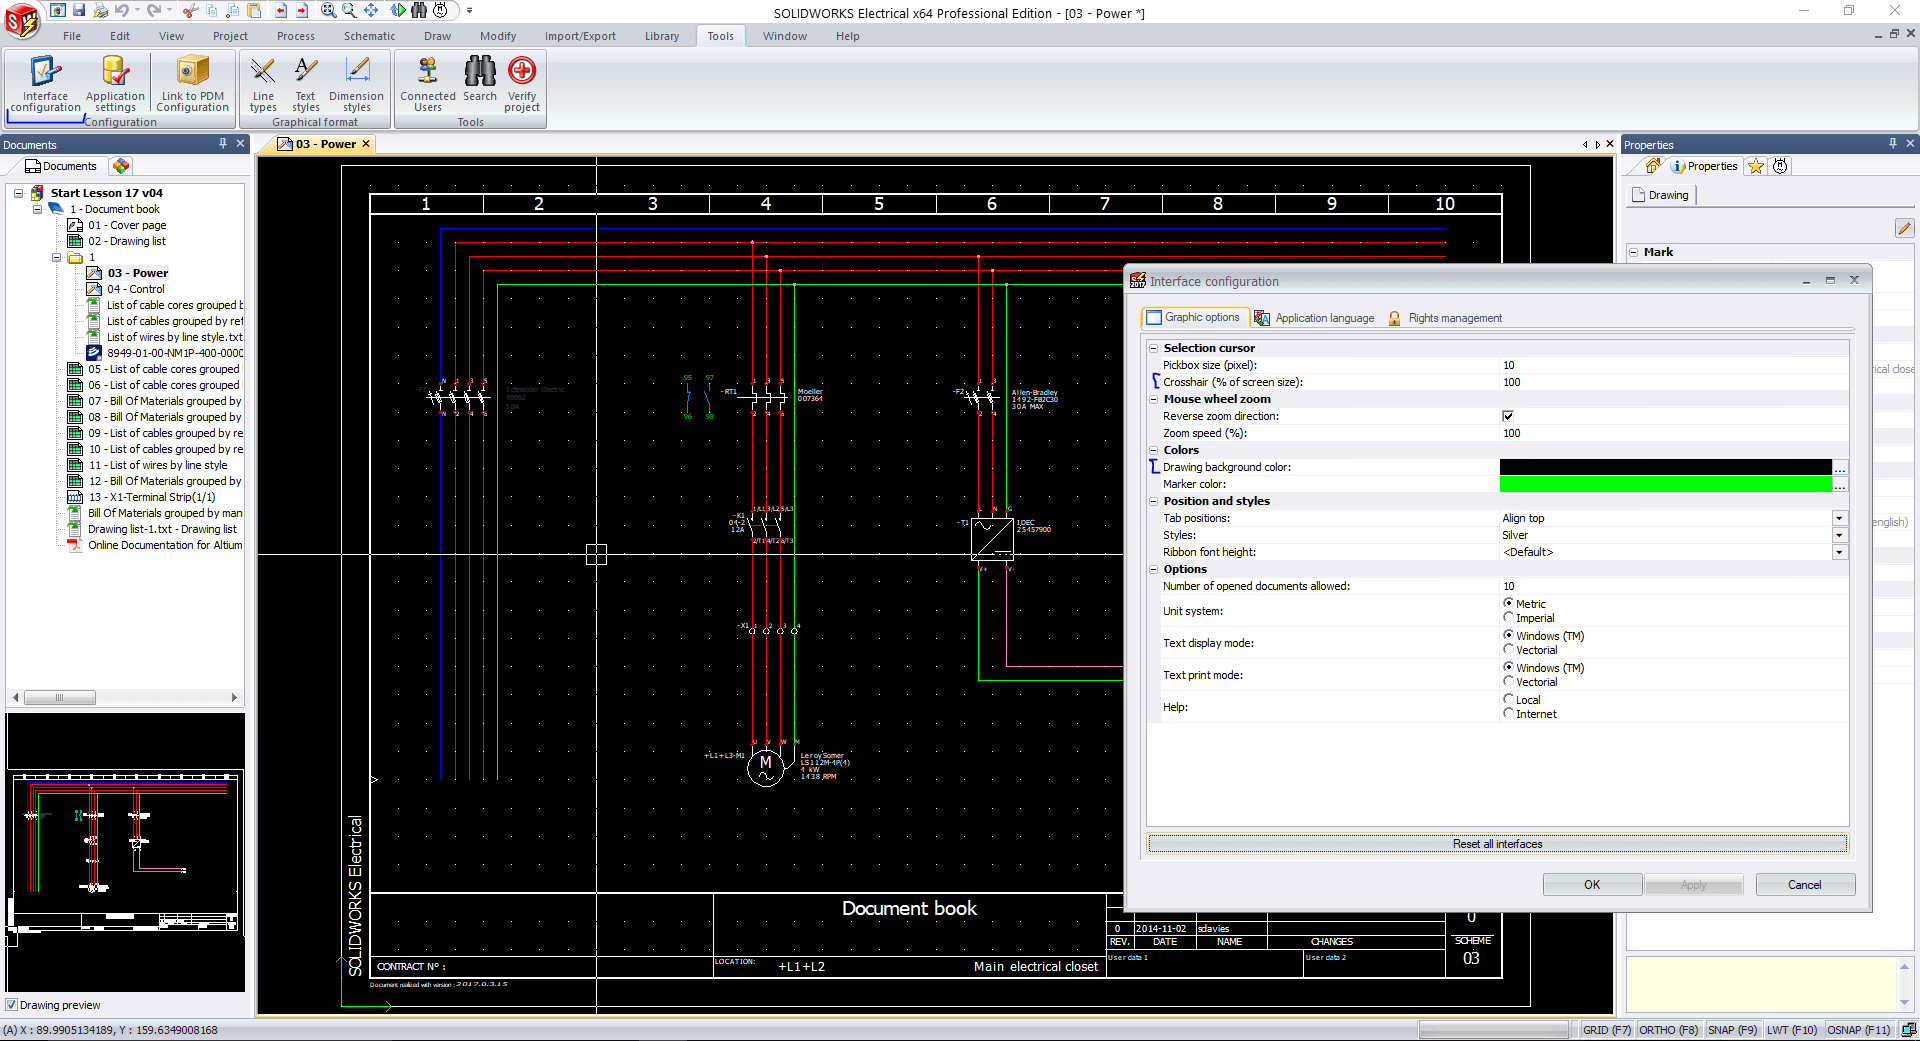 How to change the SOLIDWORKS Electrical Drawing Background Colour